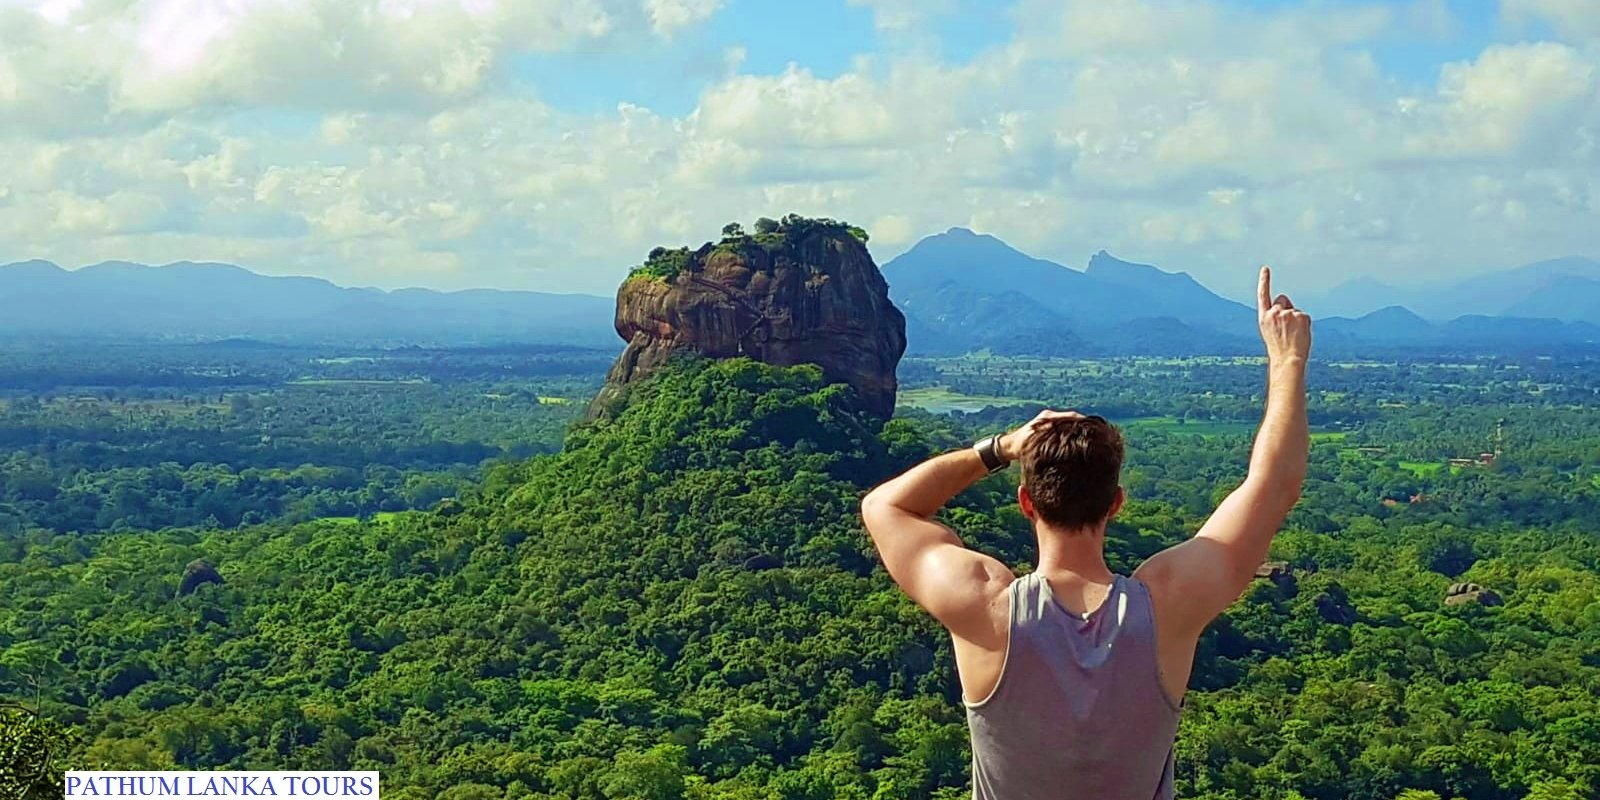 Pathum Lanka Tours